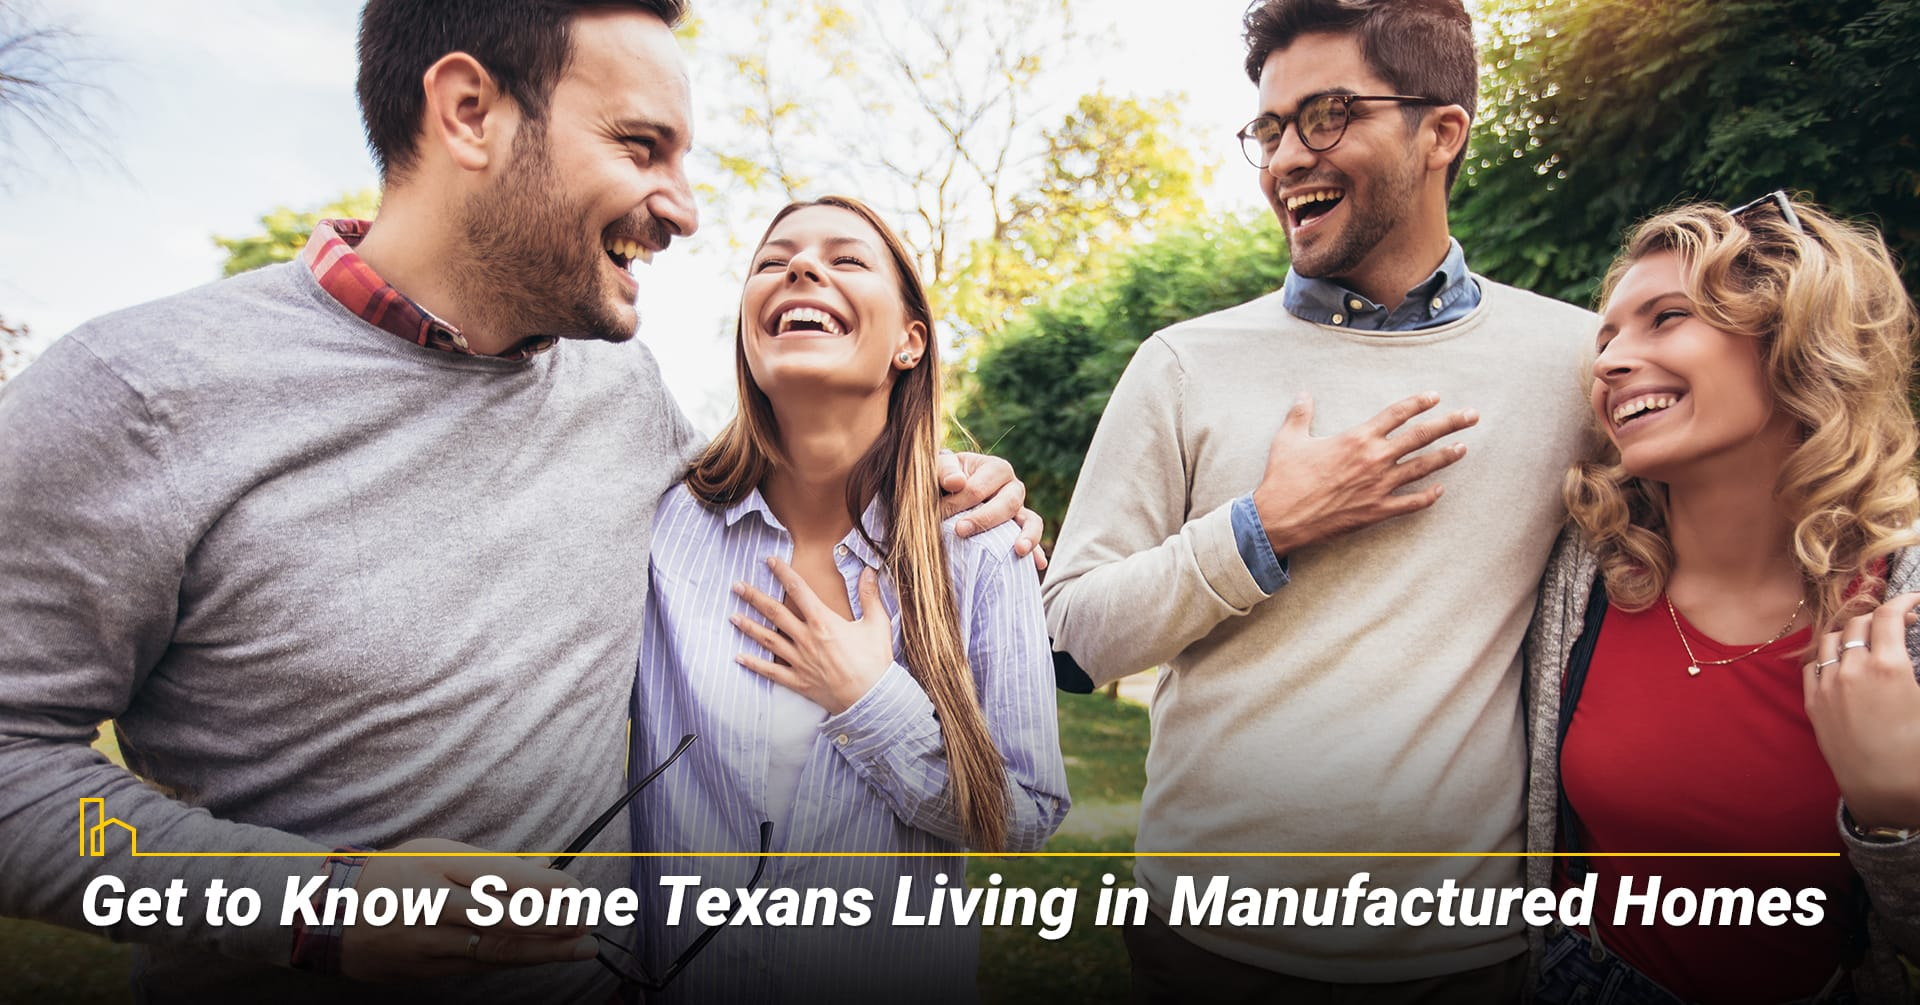 Get to Know Some Texans Living in Manufactured Homes, talk to current owners